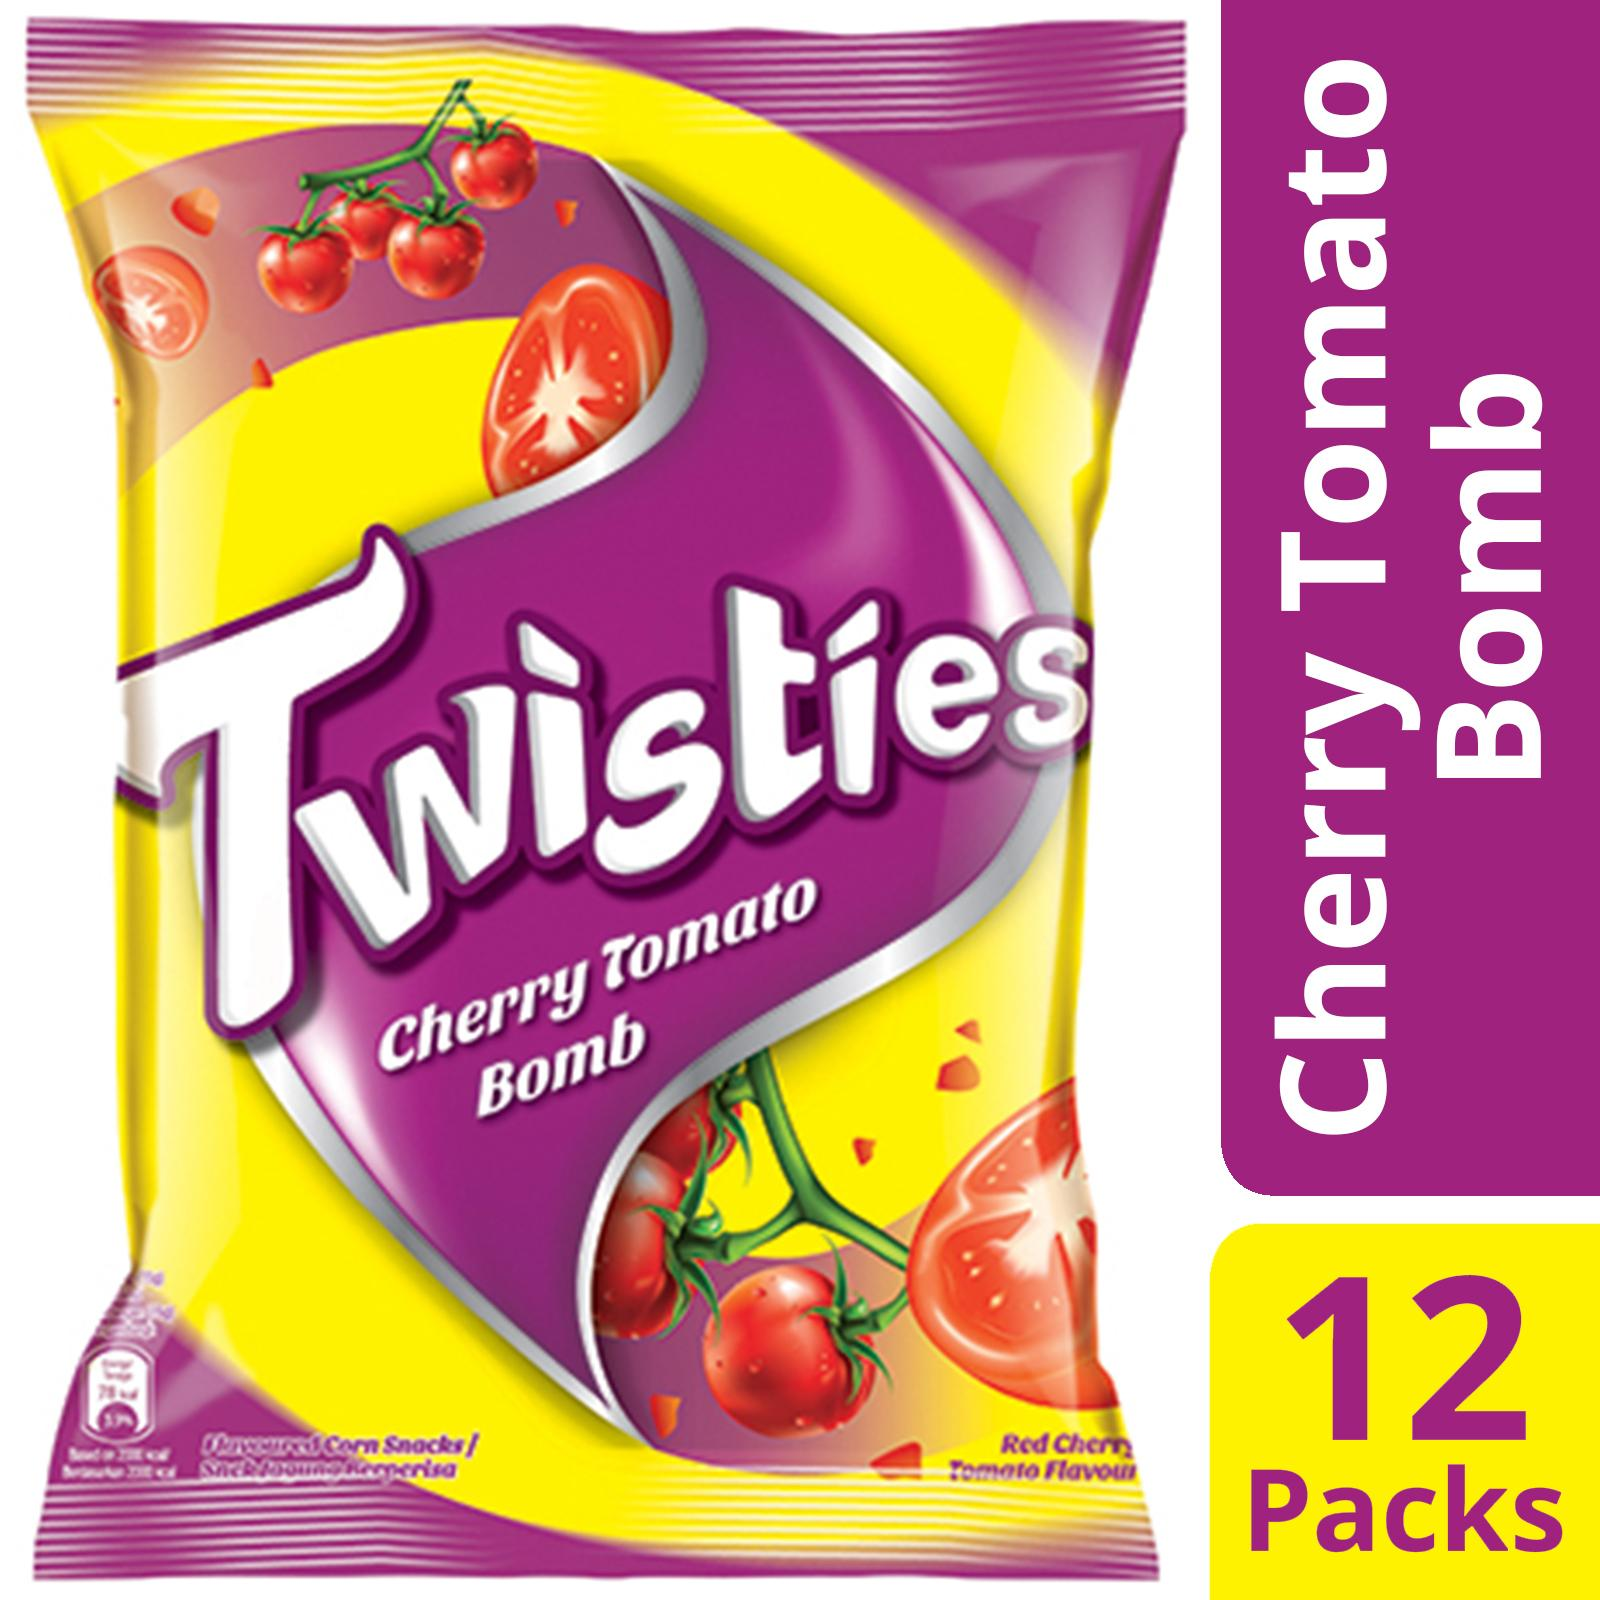 Twisties Corn Snacks, Cherry Tomato Bomb, Pack Of 12, 65g Each By Mondelez Official Store.